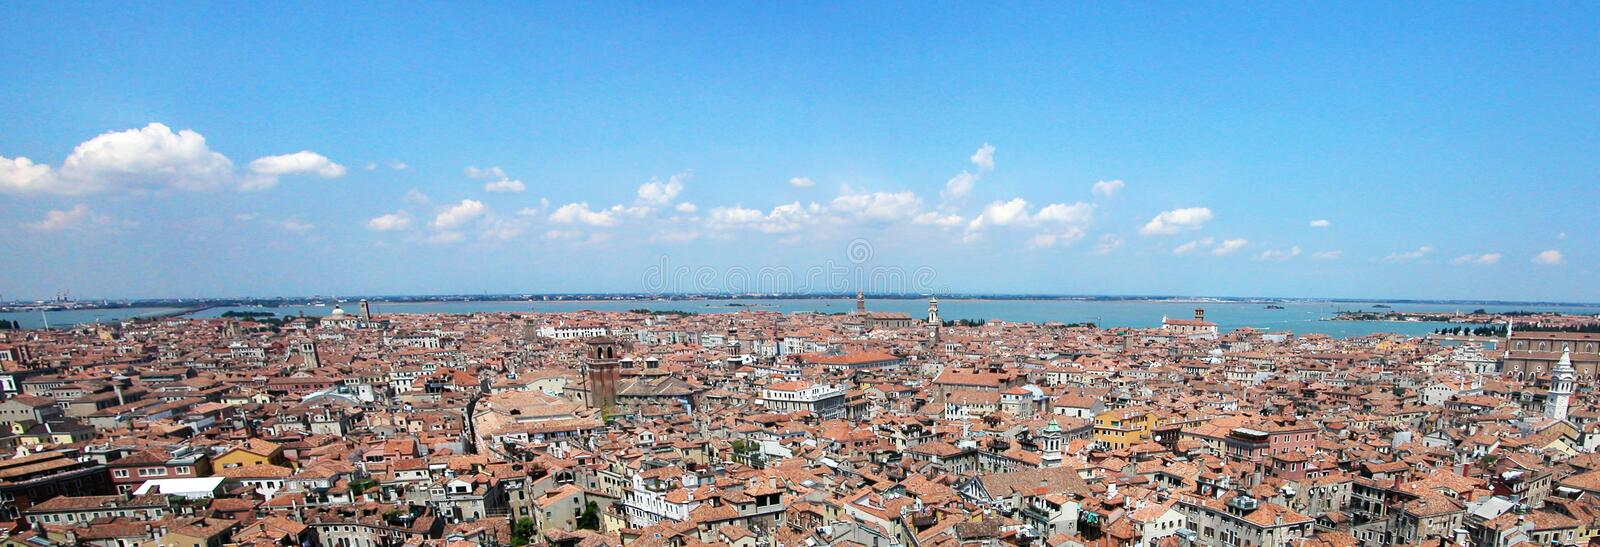 Panorama view of Venice stock images